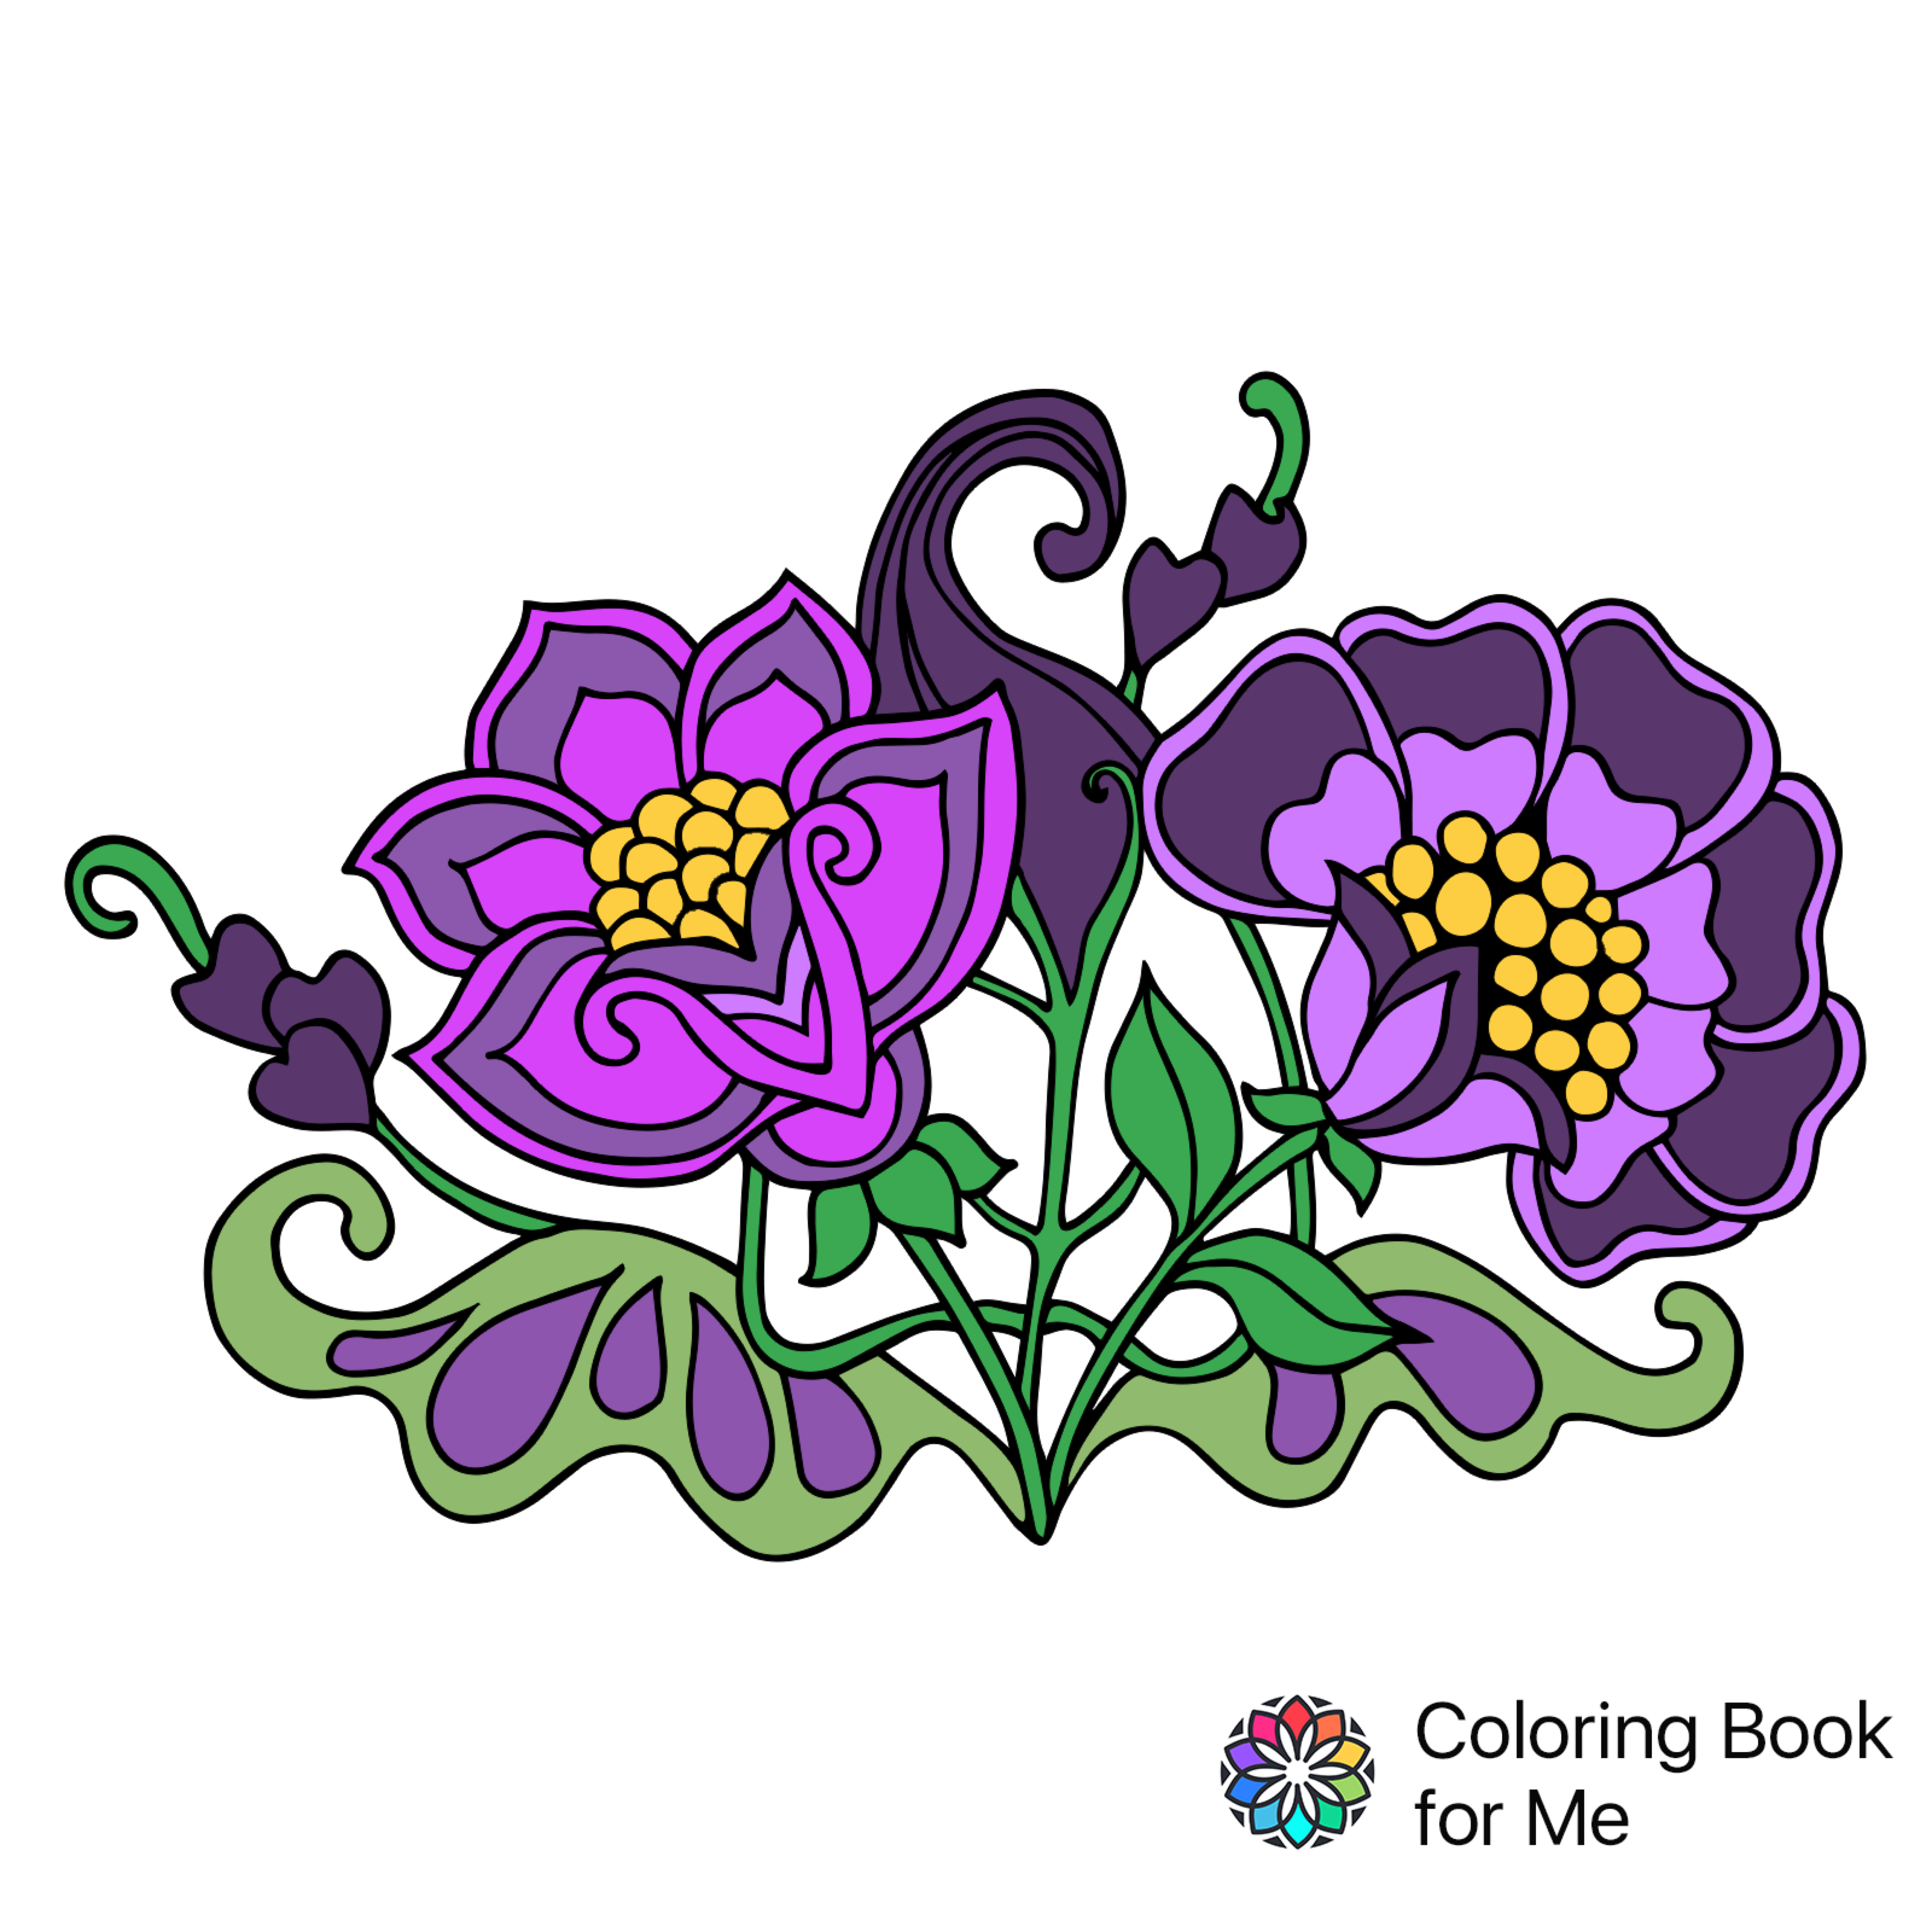 3200x3200 Colored With Coloring Book For Me Coloring Book